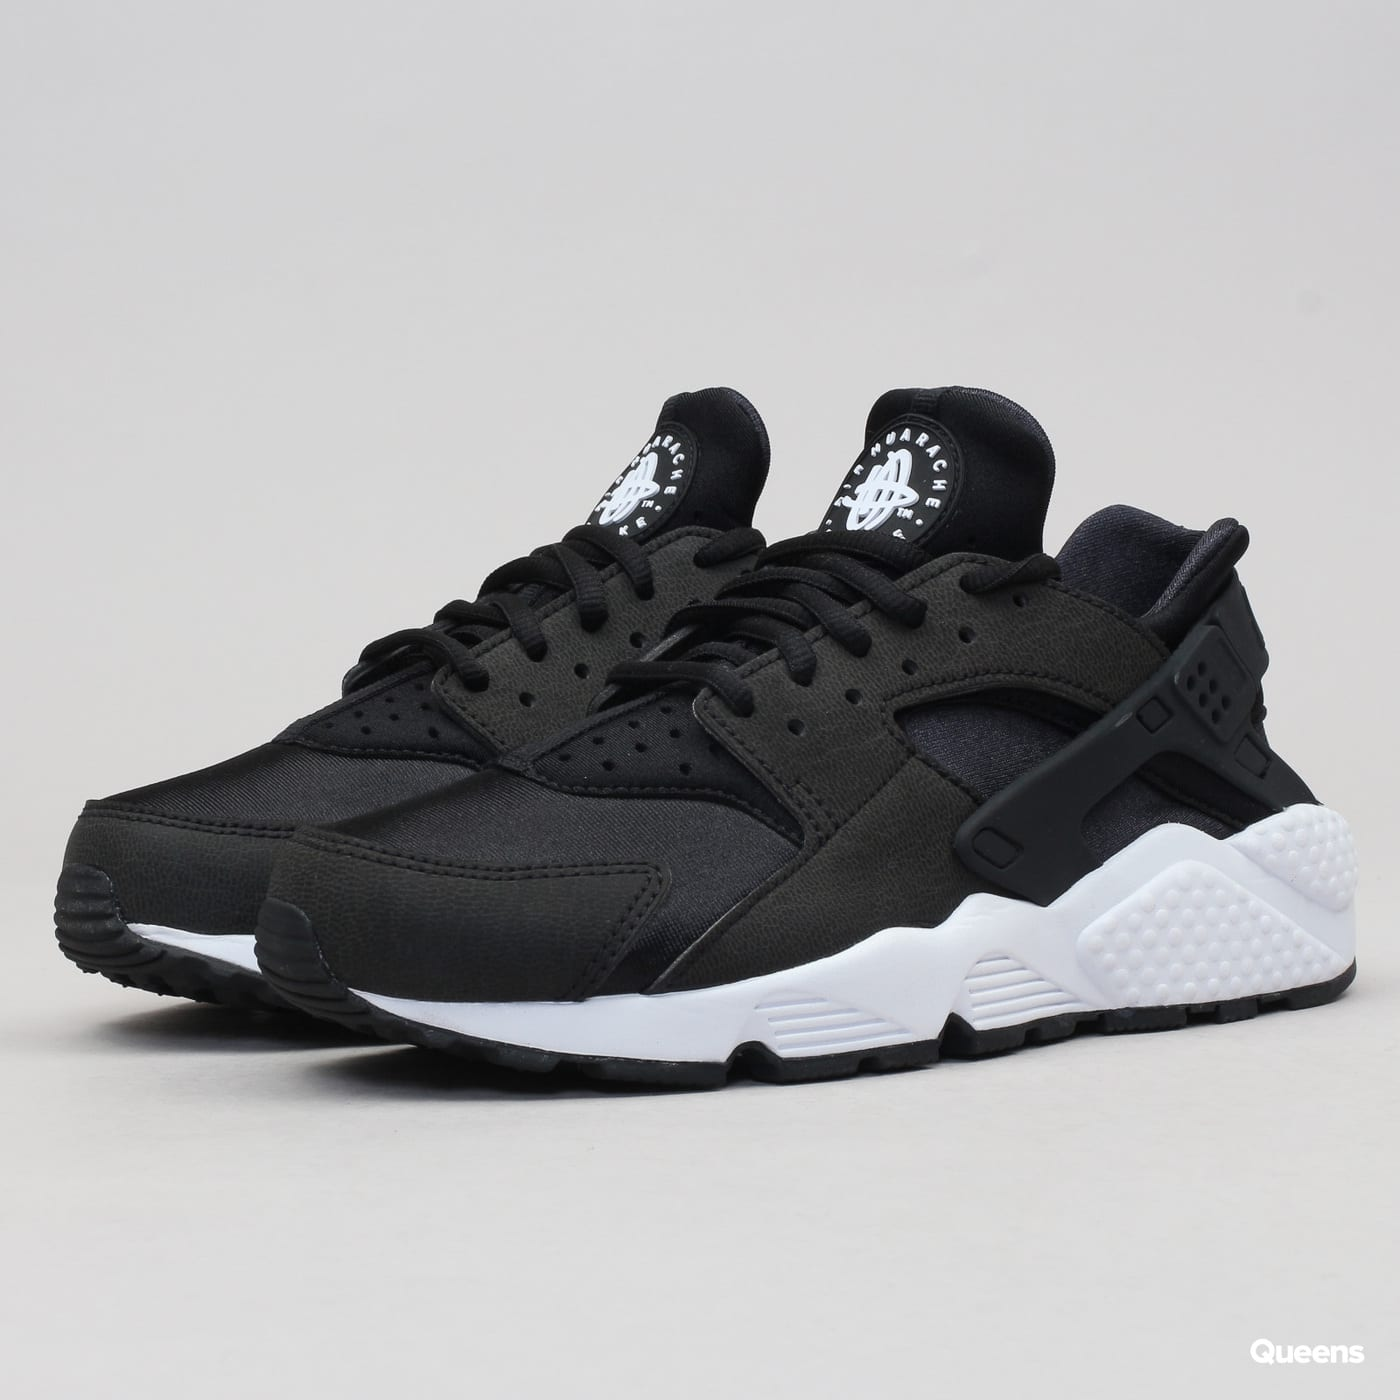 new product c94ea 4c97a Nike WMNS Air Huarache Run black / black - white